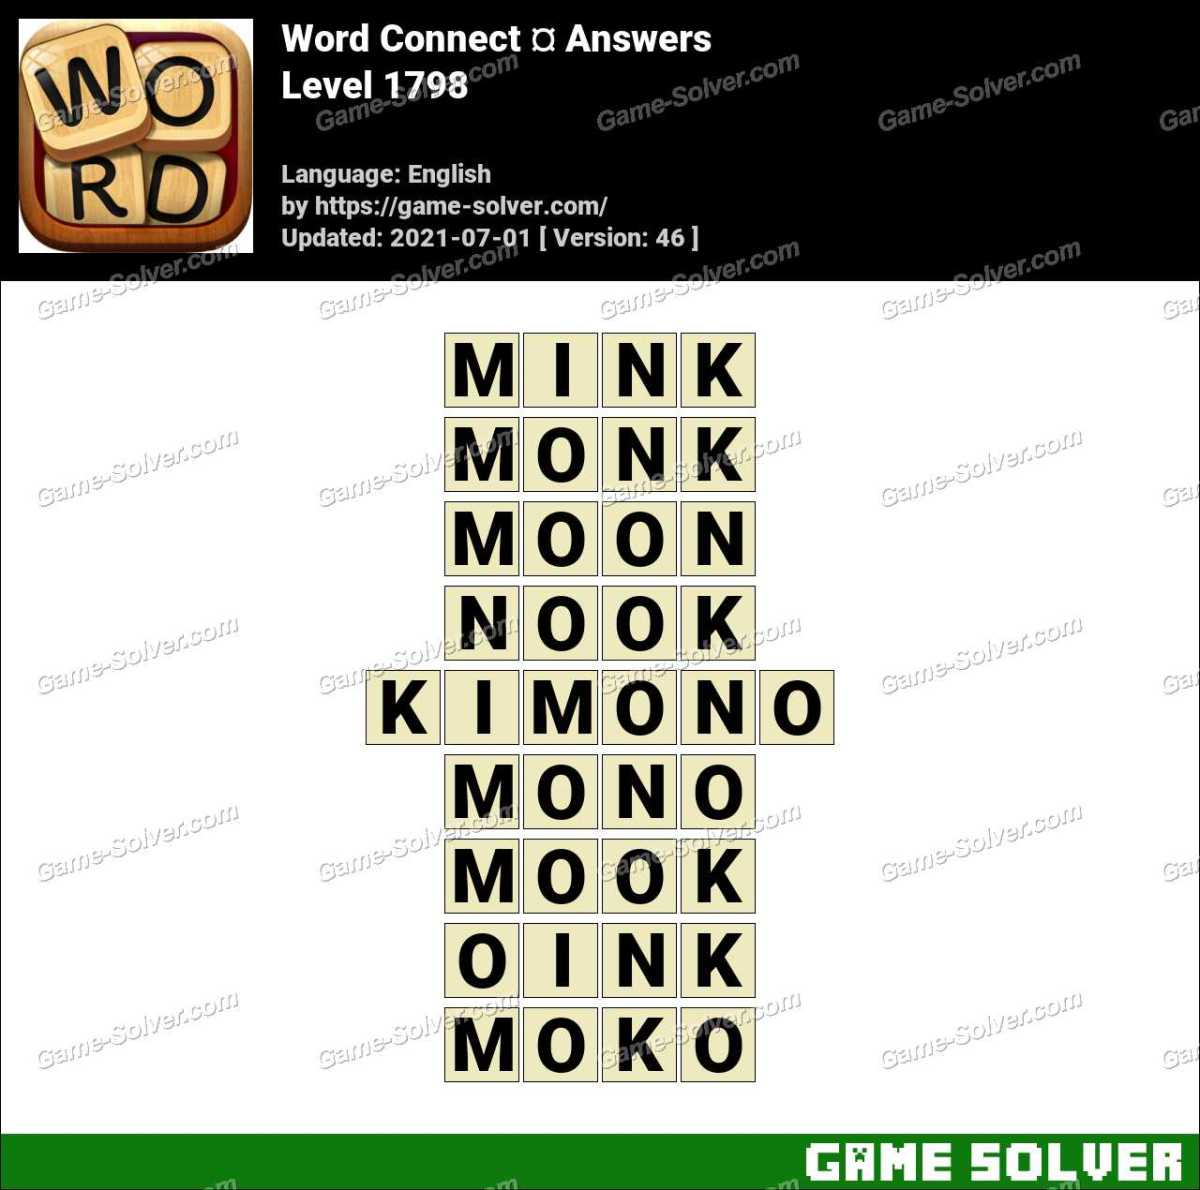 Word Connect Level 1798 Answers